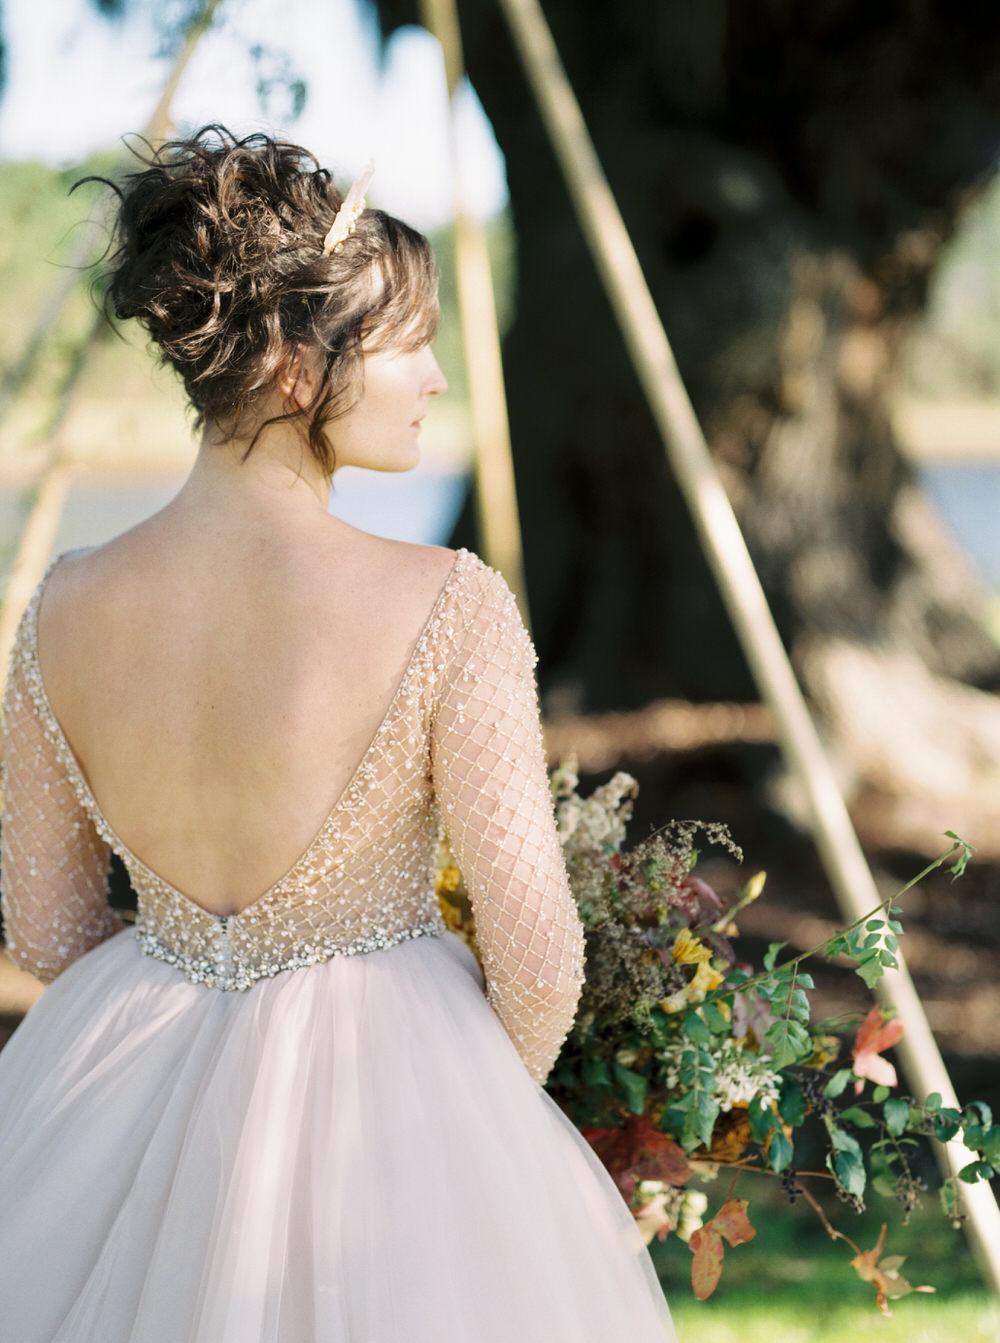 Fairy Tales Come True at this Wedding Inspiration in the...